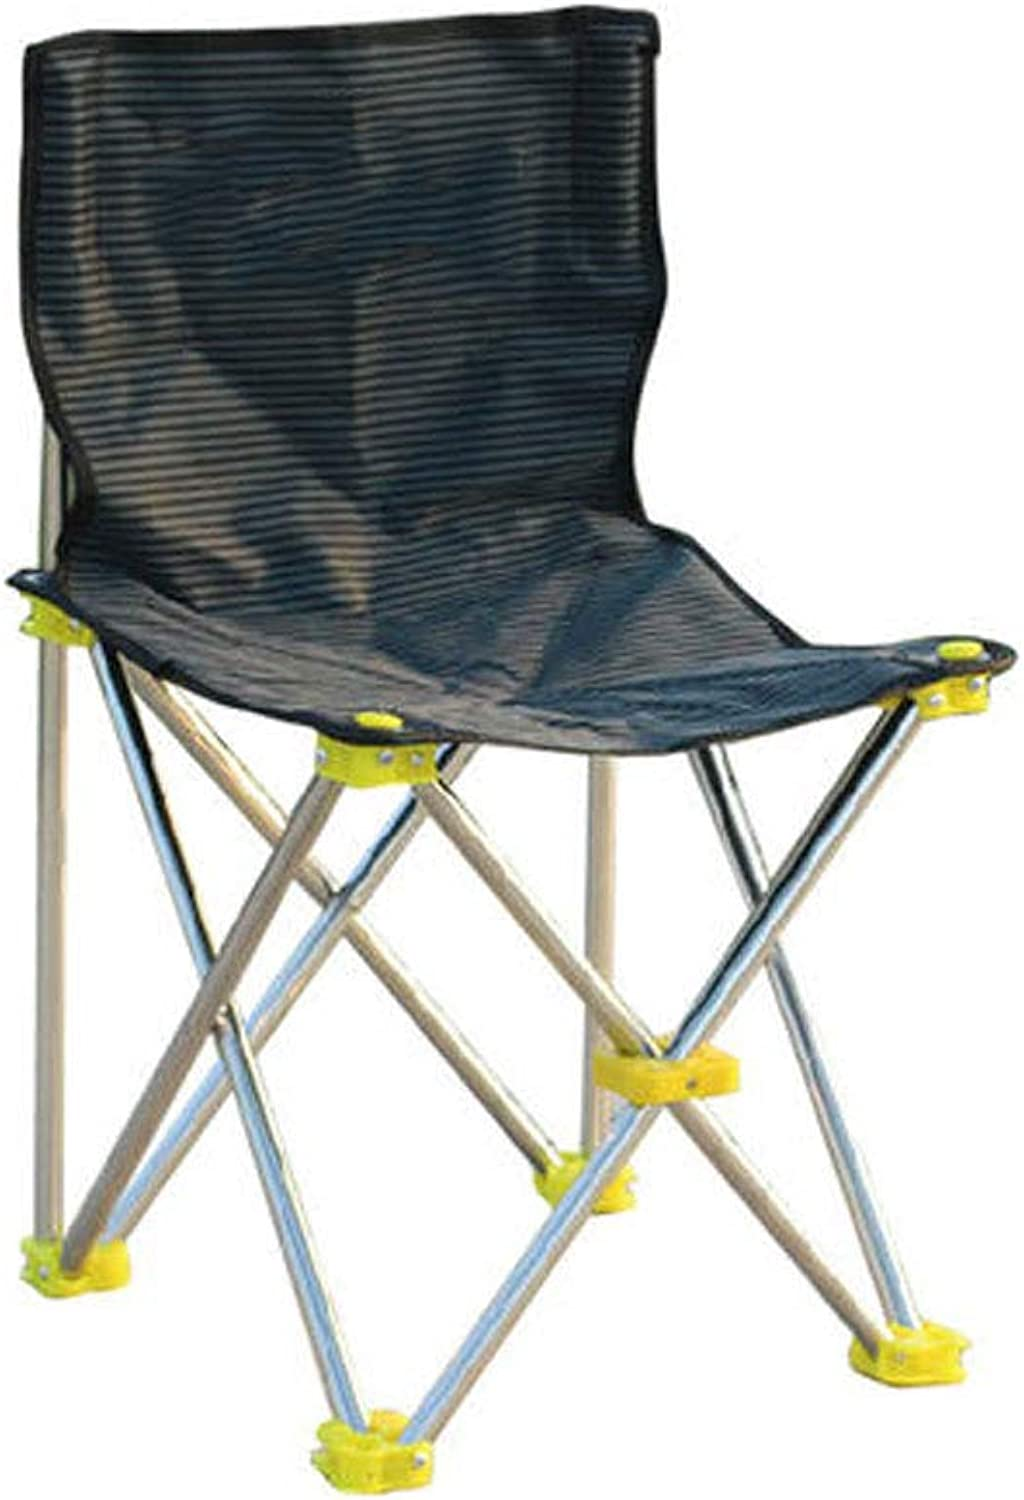 GLZDY Foldable Stainless Steel Outdoor Leisure Folding Chair Fishing Chair, with Fishing Frame Fishing Chair  38.5×36×66cm